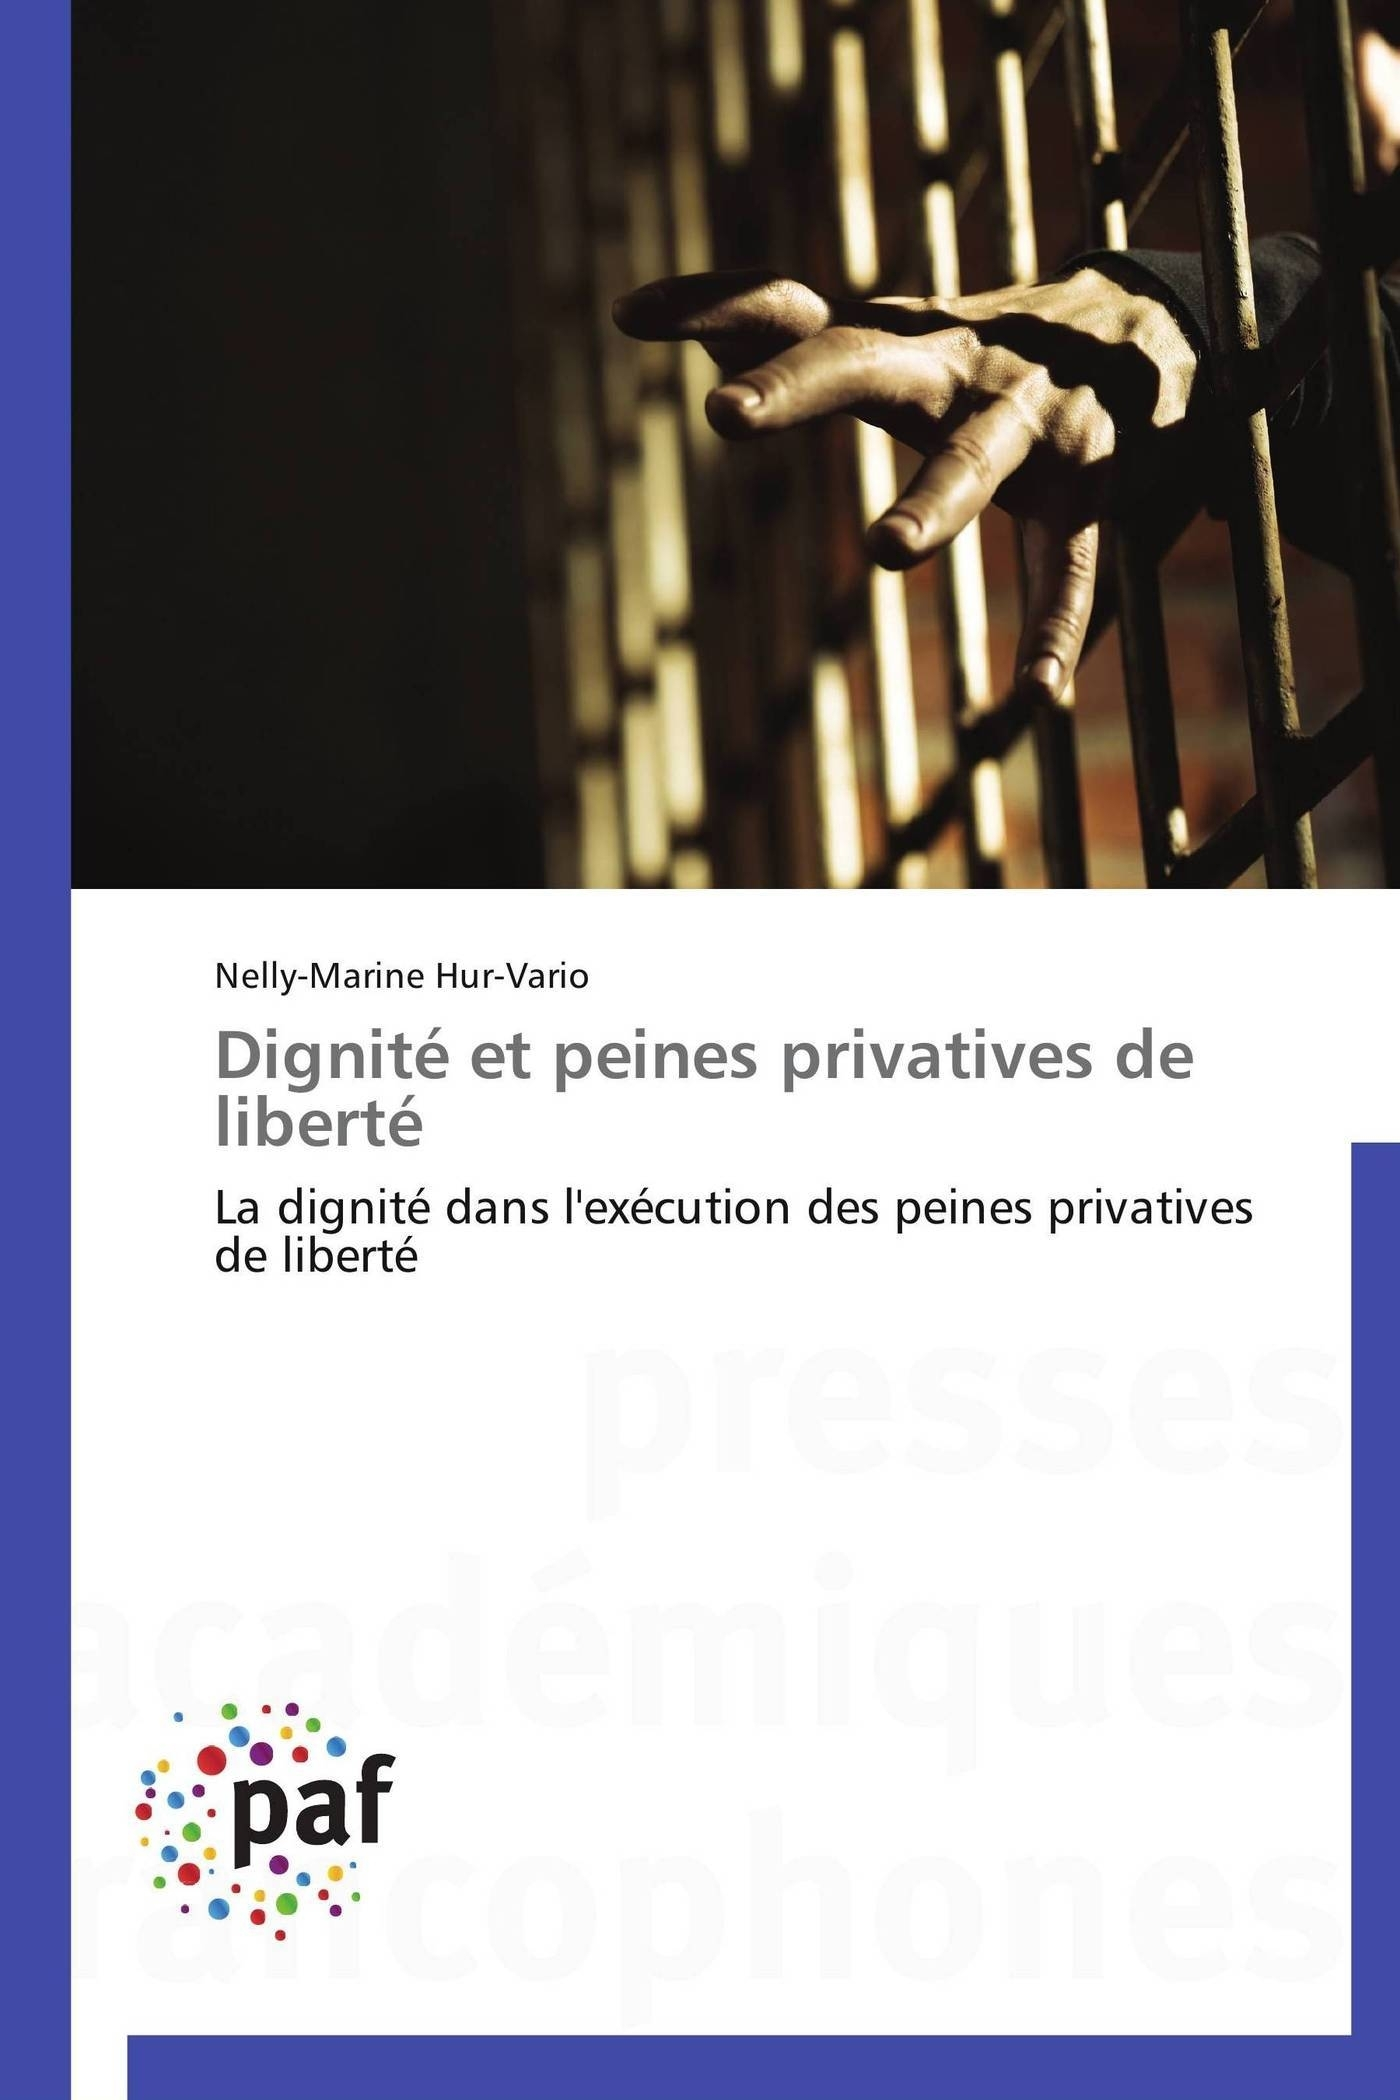 DIGNITE ET PEINES PRIVATIVES DE LIBERTE